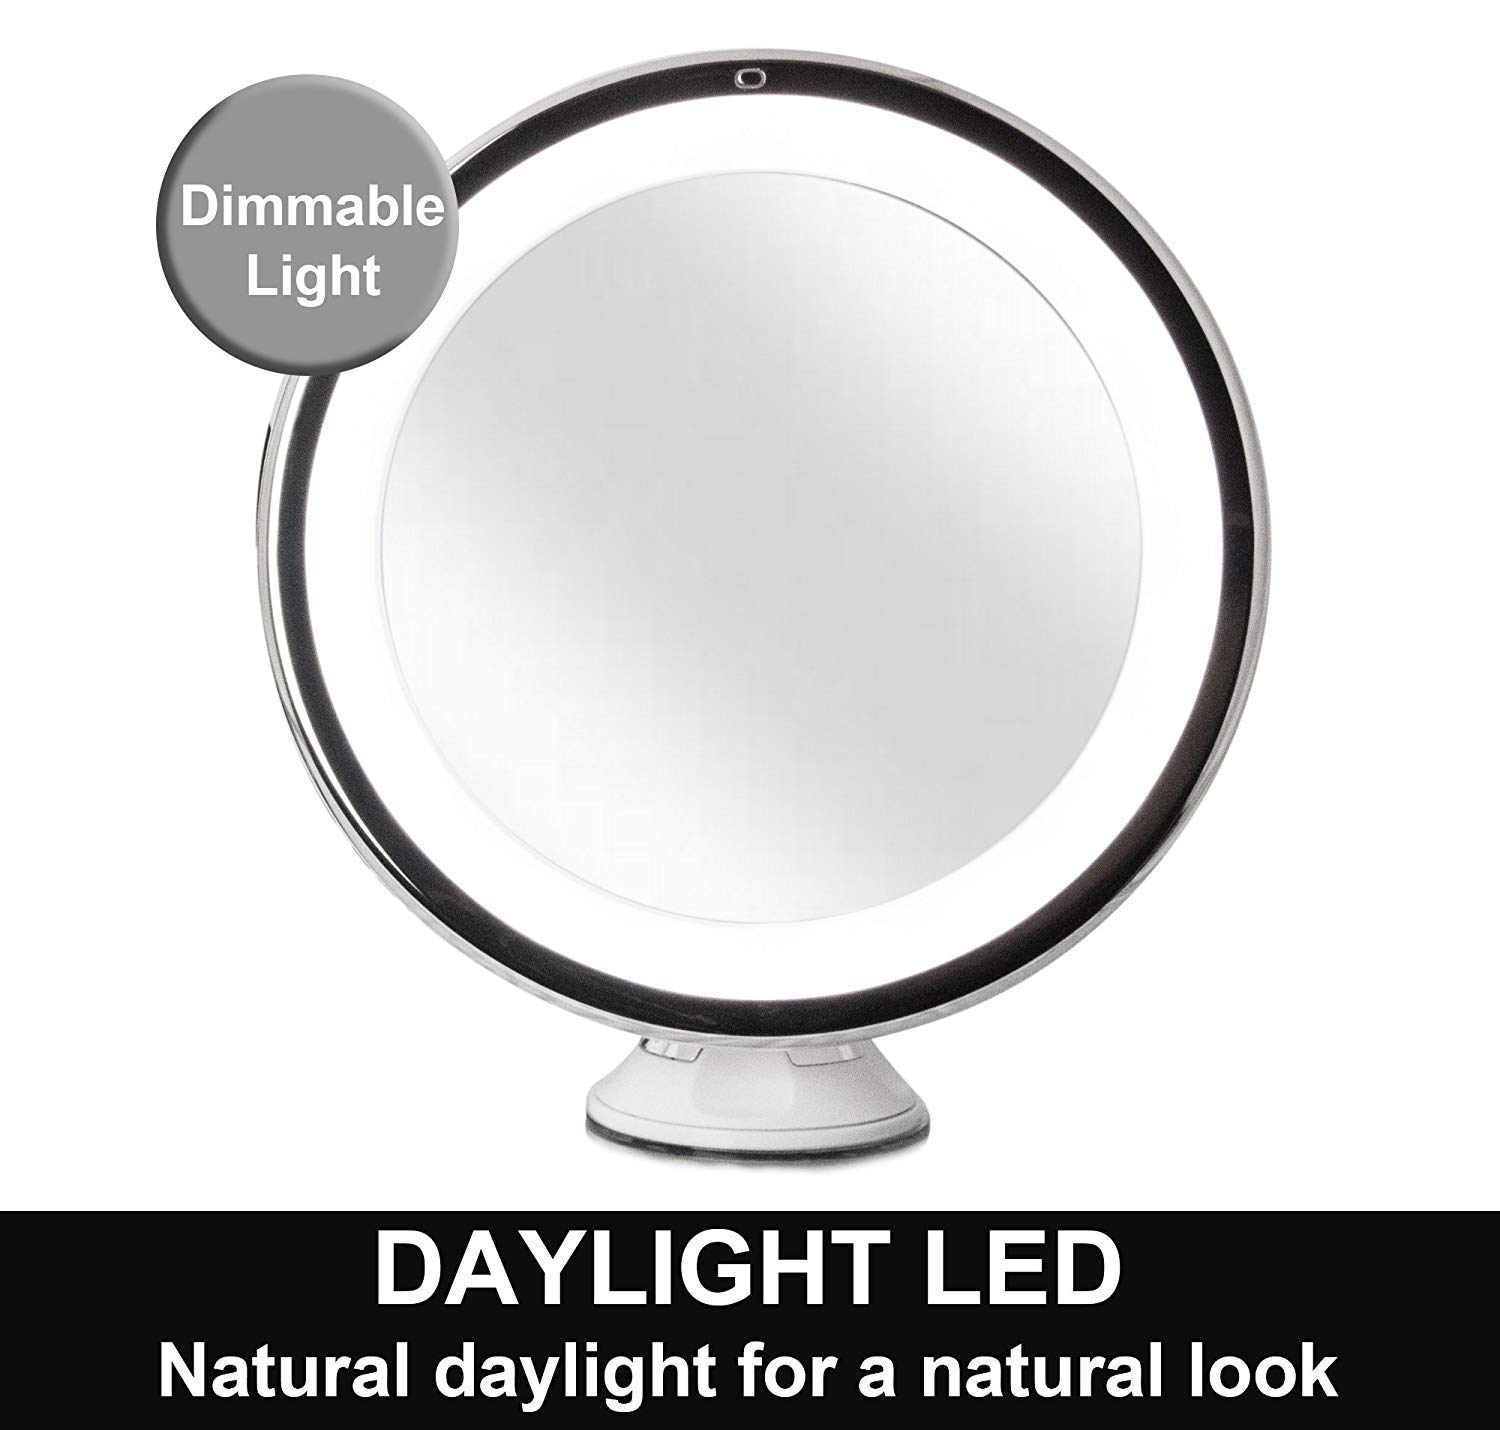 Fancii Daylight LED 10X Magnifying Makeup Mirror - 8.0 Large Lighted Travel Vanity Mirror - Dimmable Light, Cordless, Battery Operated, Locking Suction, 360 Rotation, Portable /& Illuminated TYT FC-LMMM10X